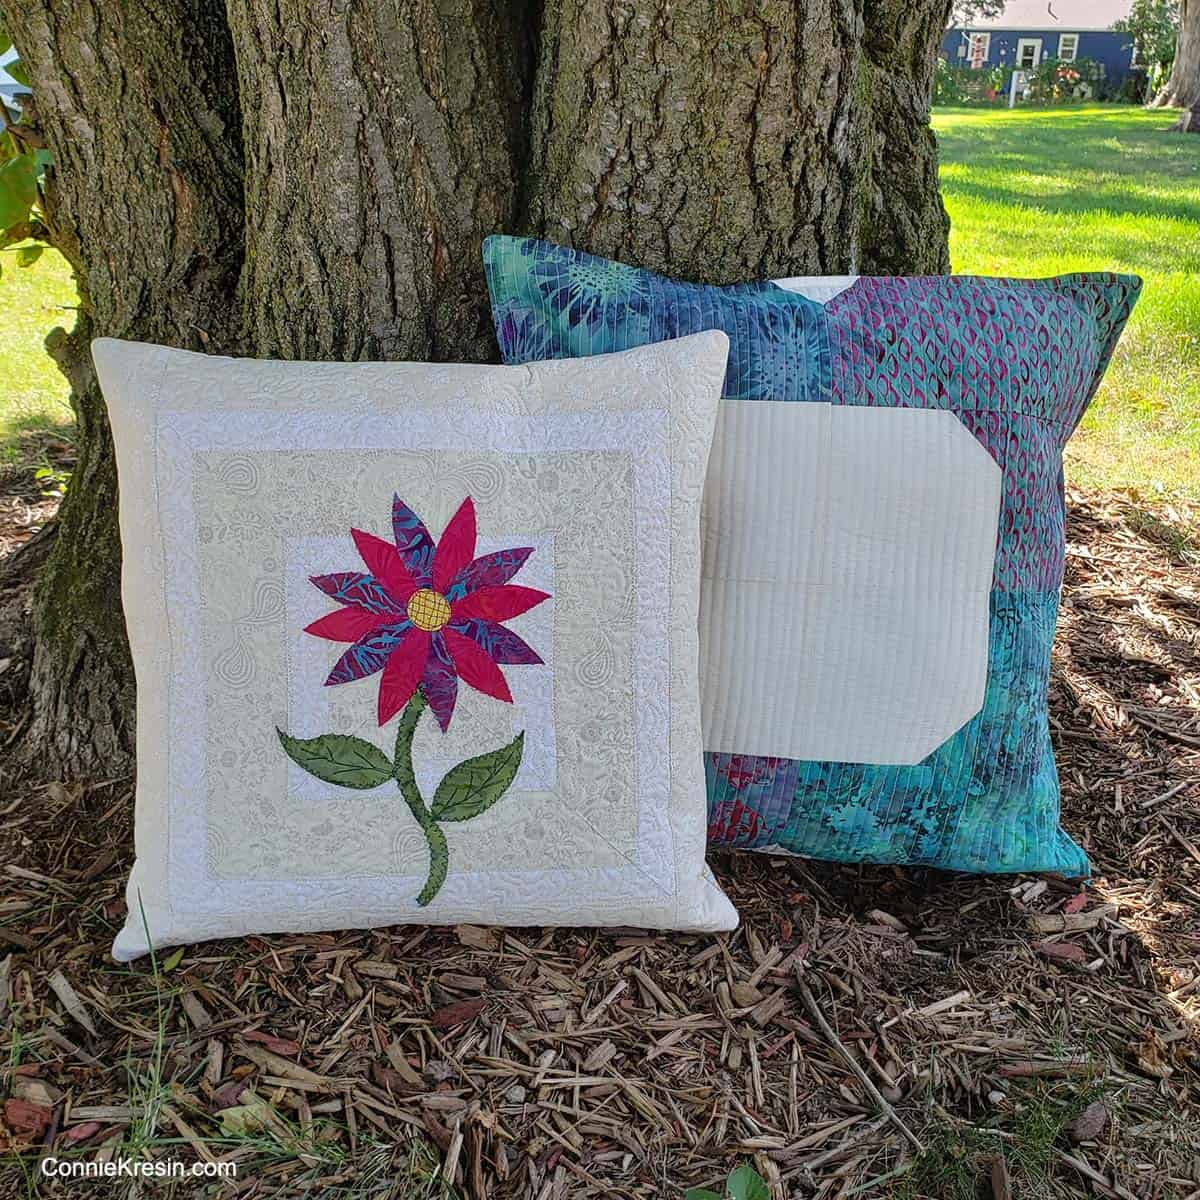 Quilted pillows by tree